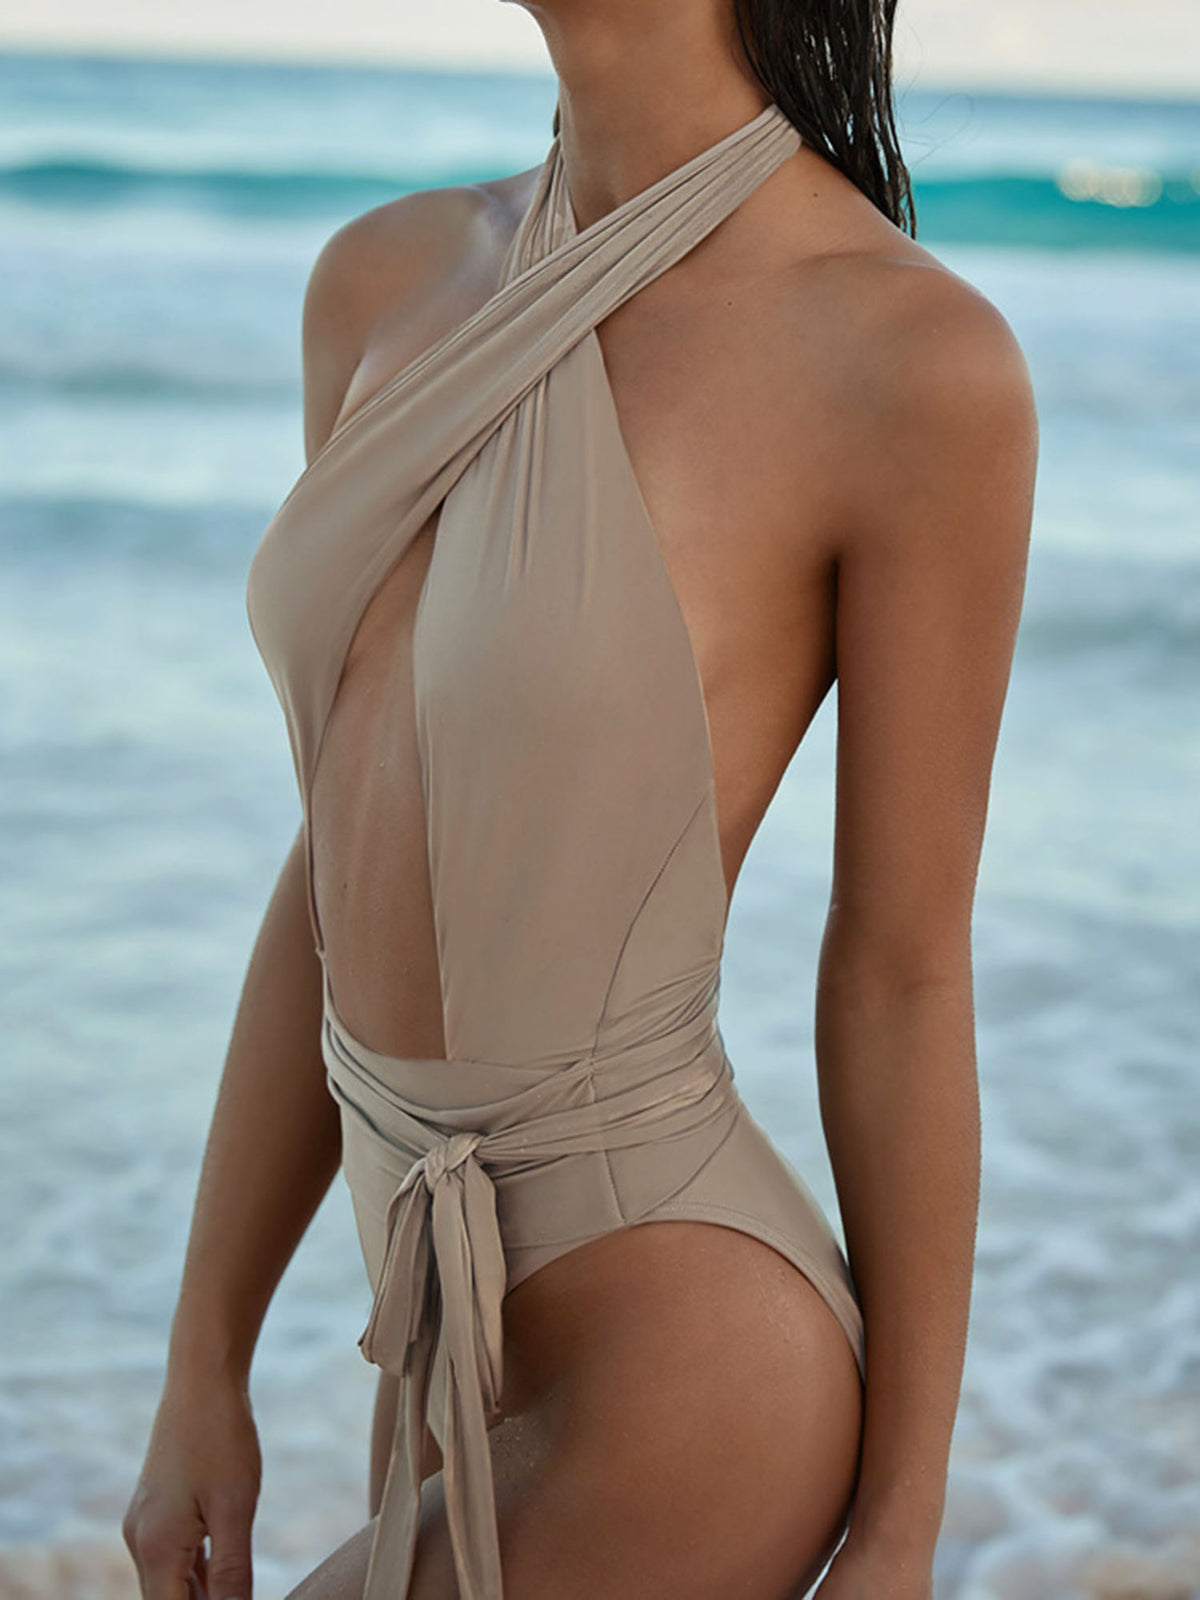 Halter Tie Up One Piece Swimsuit LG20 - worthtryit.com